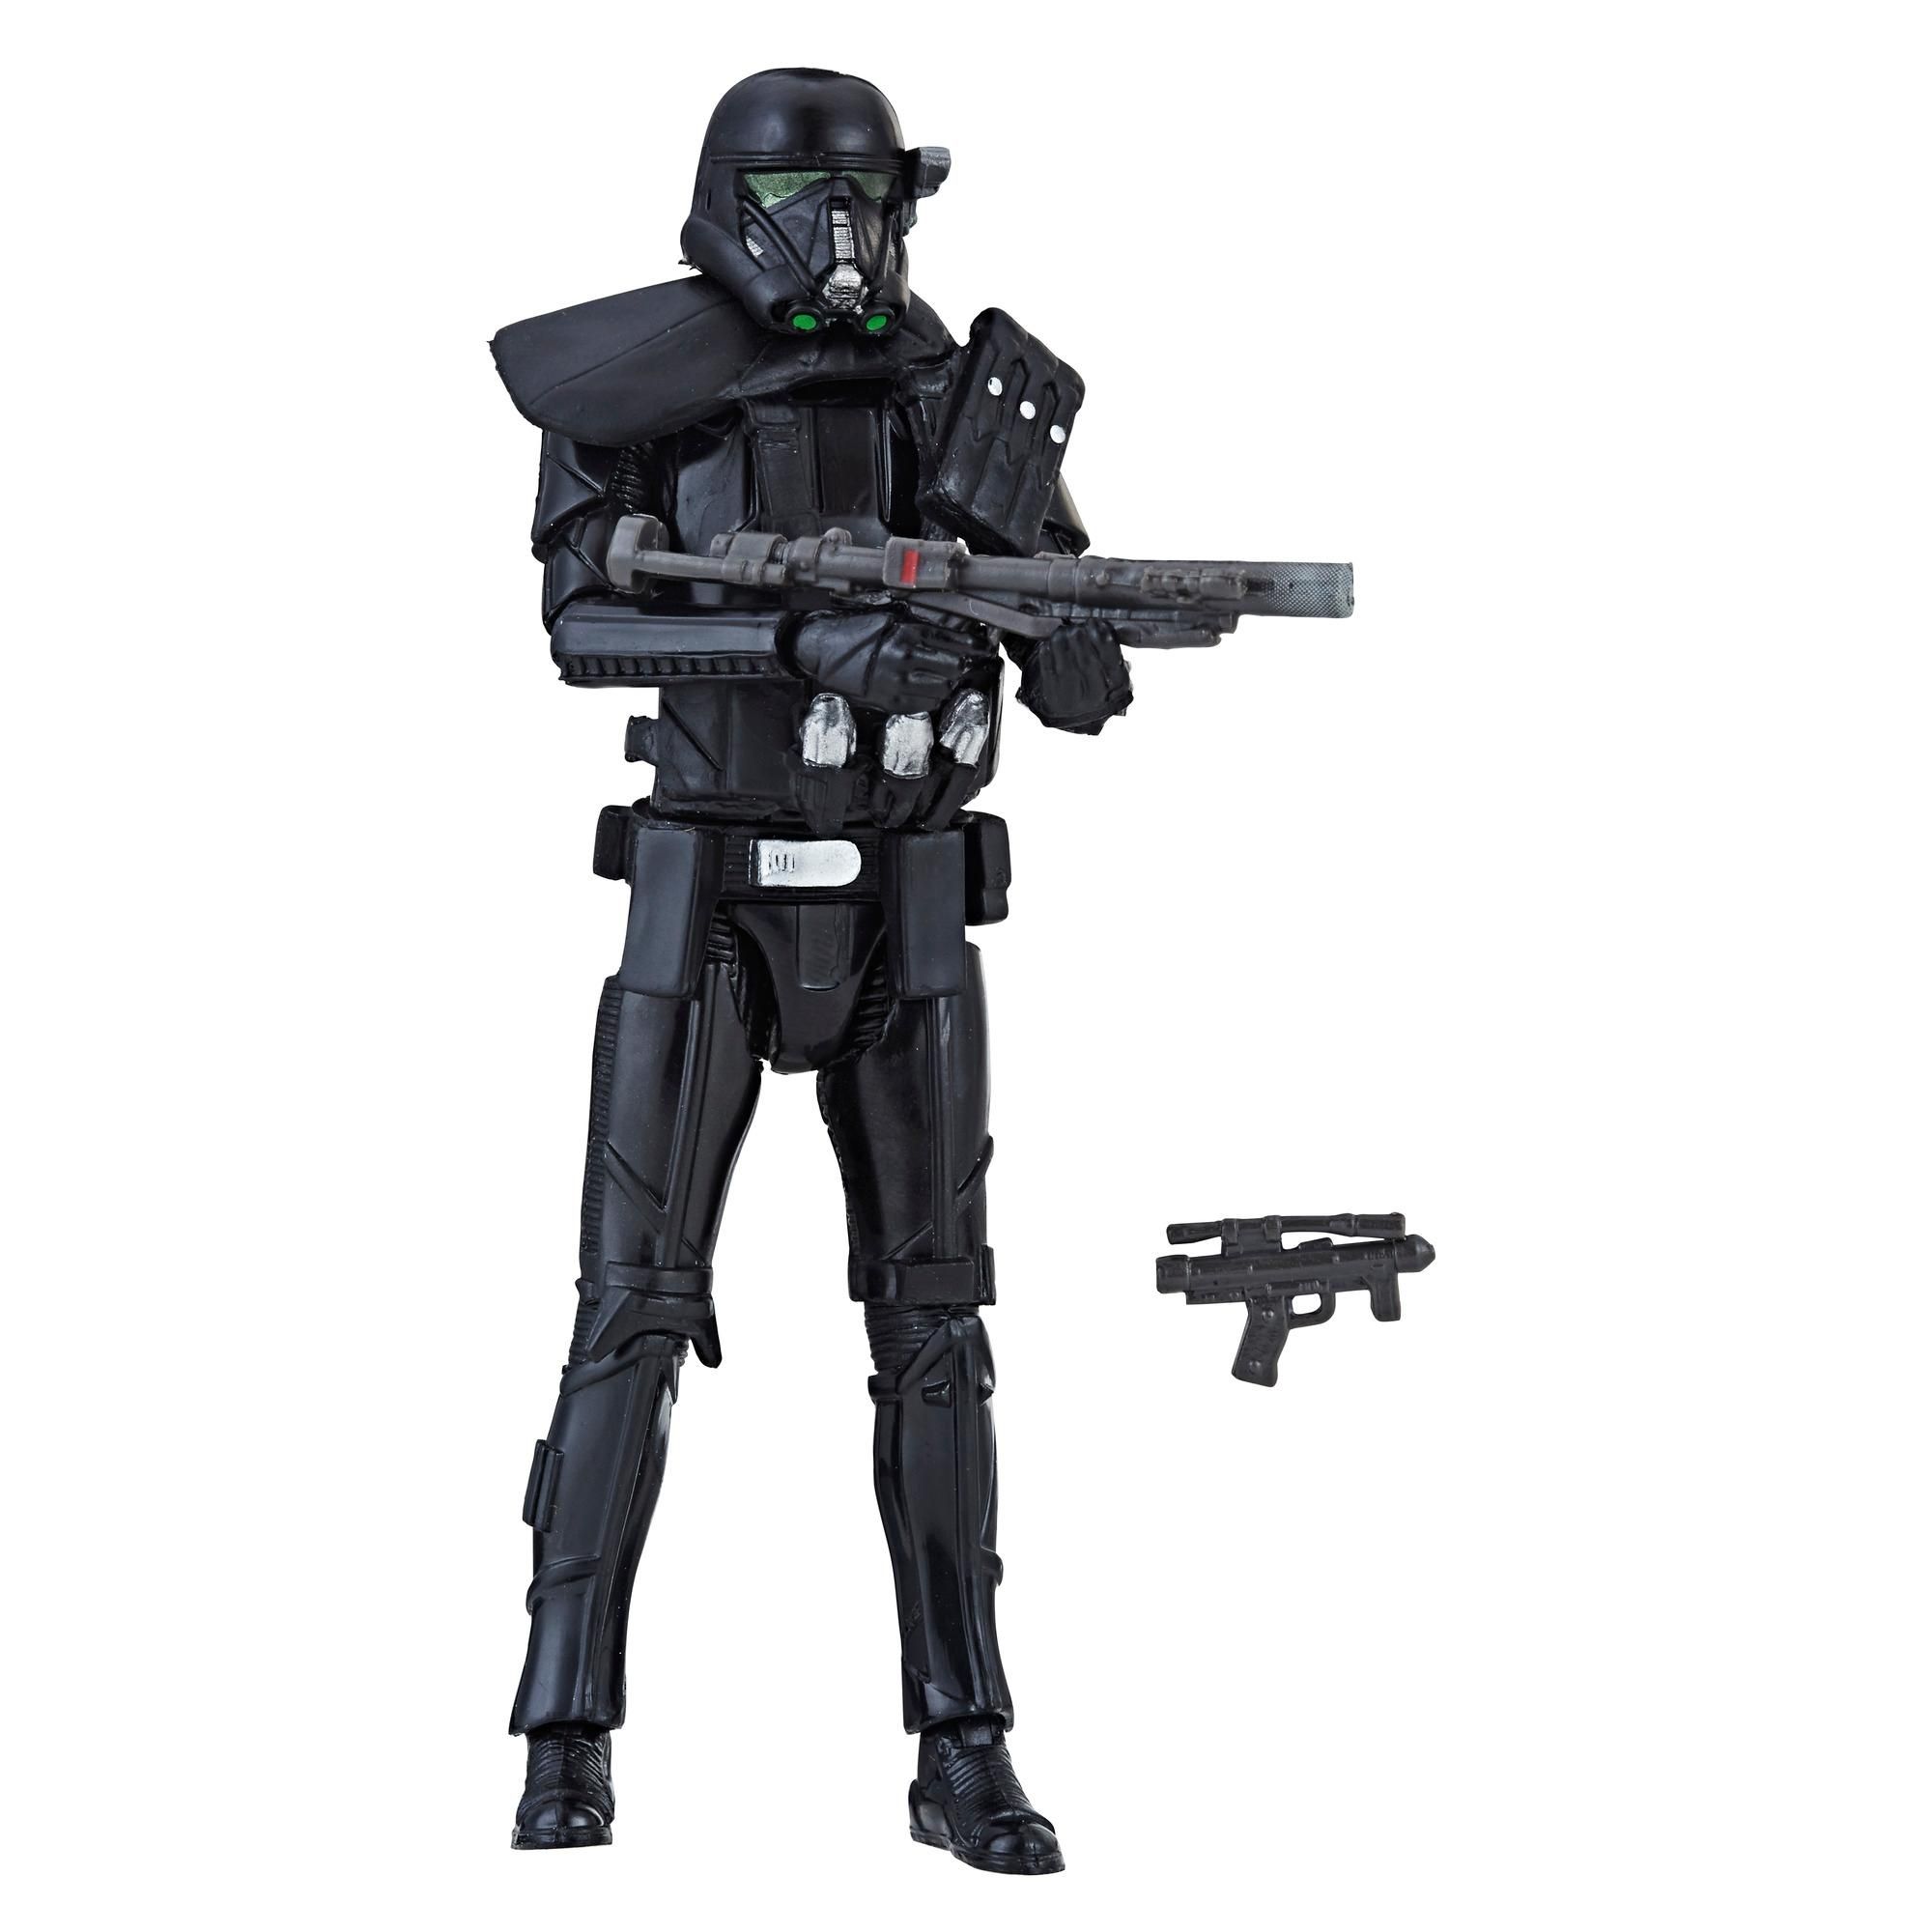 Star Wars - Collection Vintage - Figurine de Death Trooper impérial de 9,5 cm